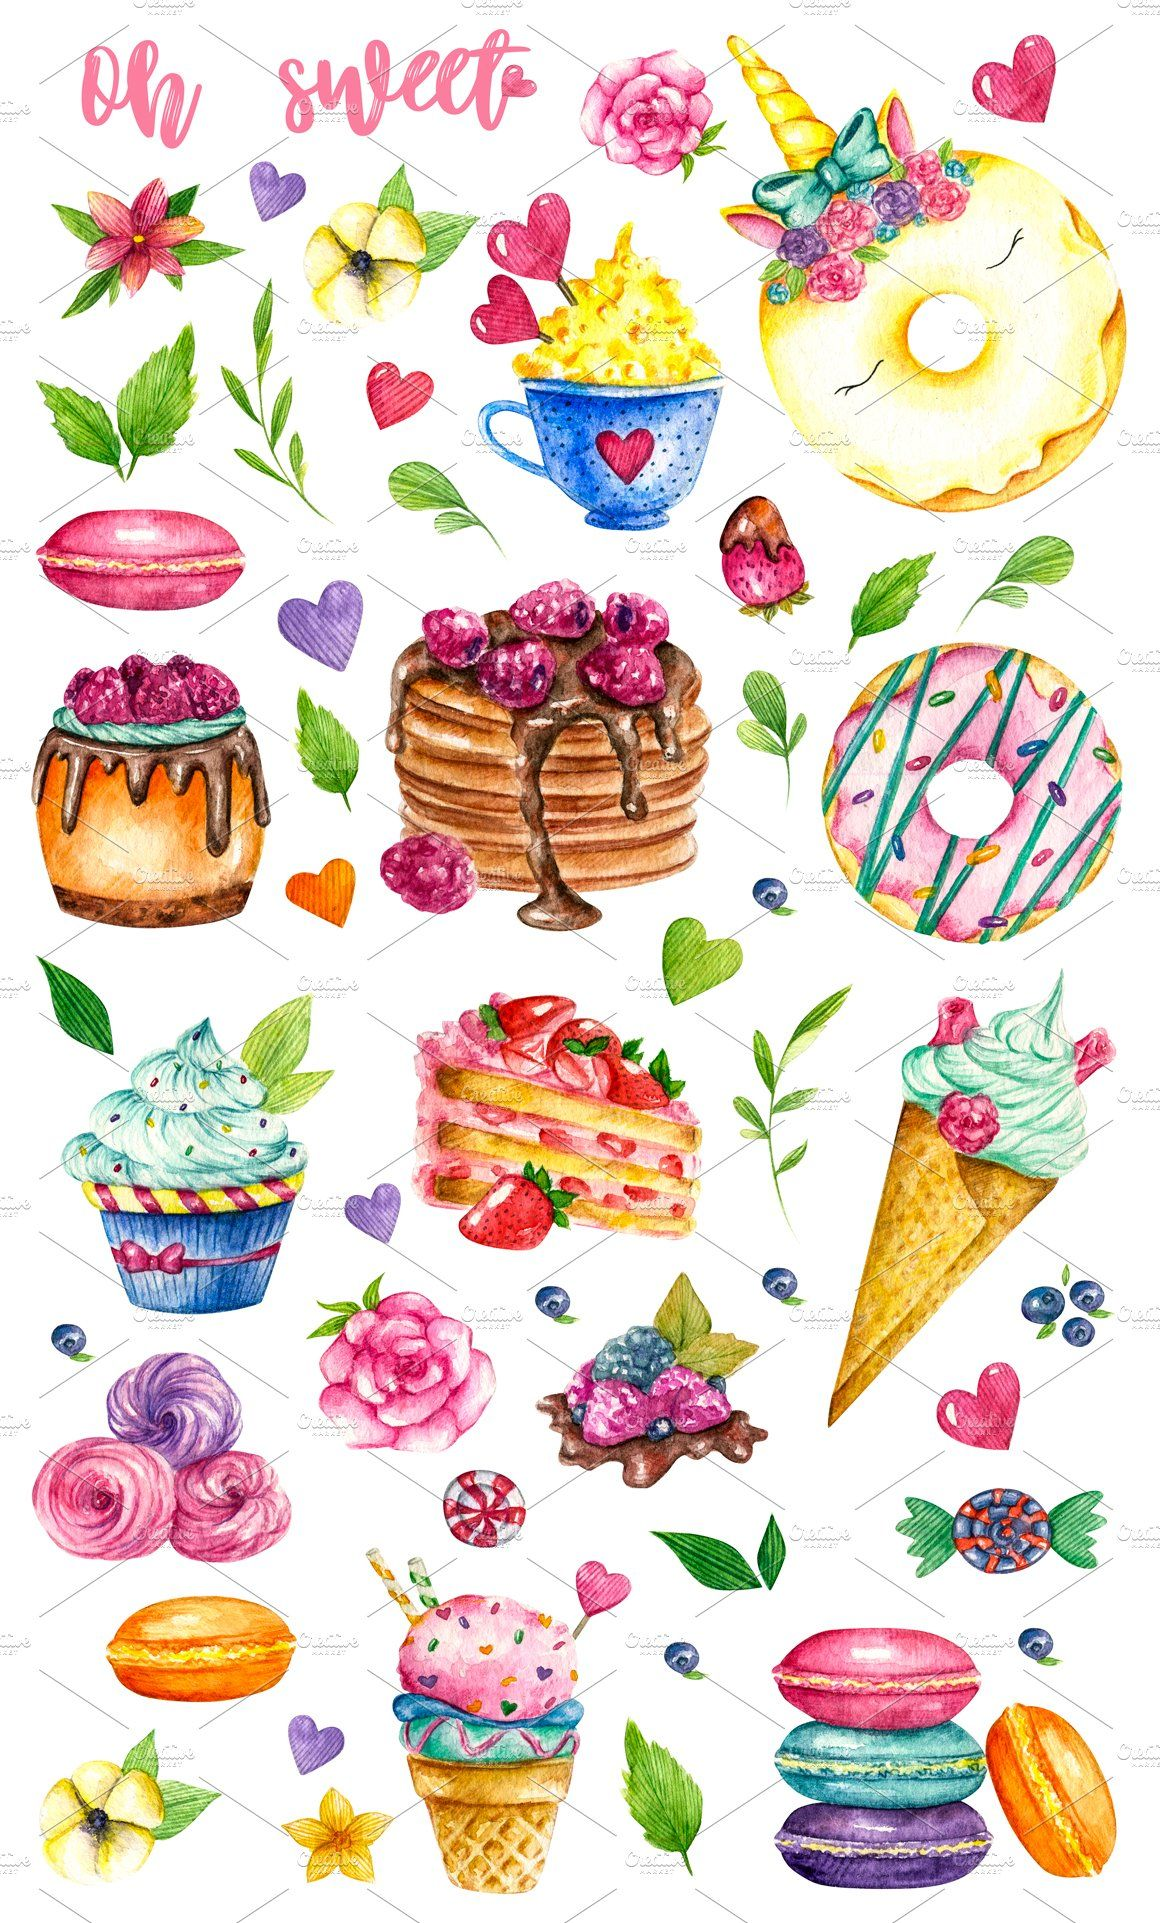 Sweets Desserts Watercolor Clipart